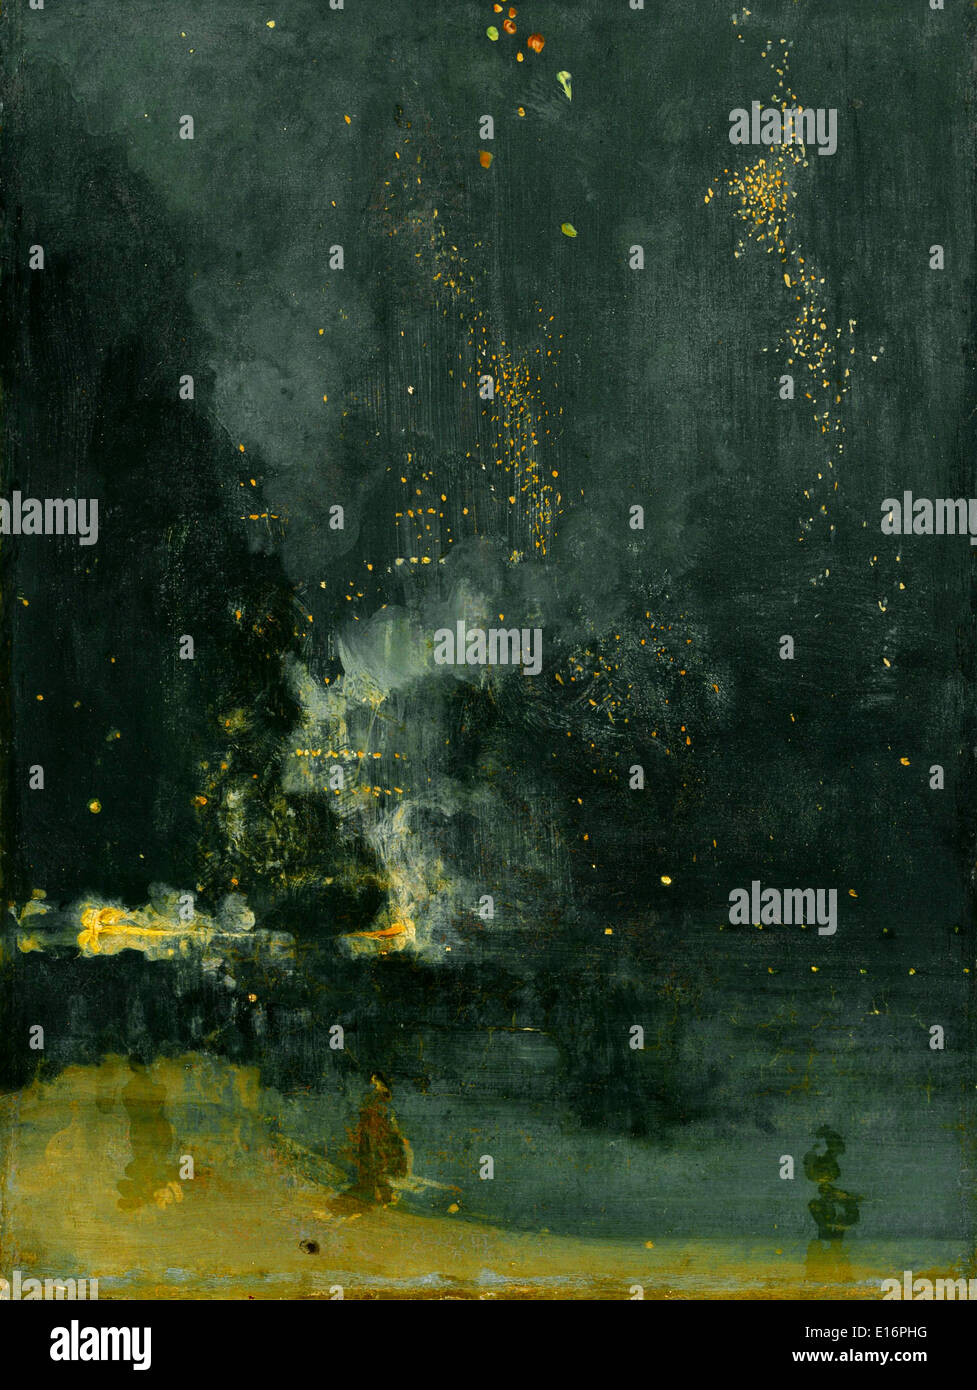 Nocturne in Black and Gold - The Falling Rocket by James McNeill Whistler, 1875 - Stock Image